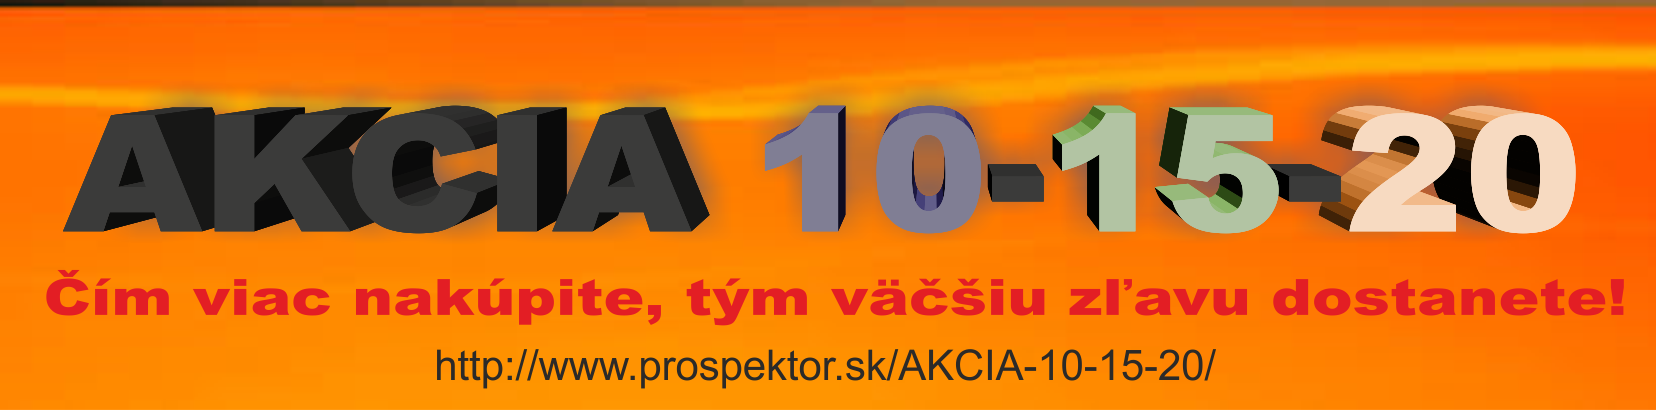 akcia101520.png